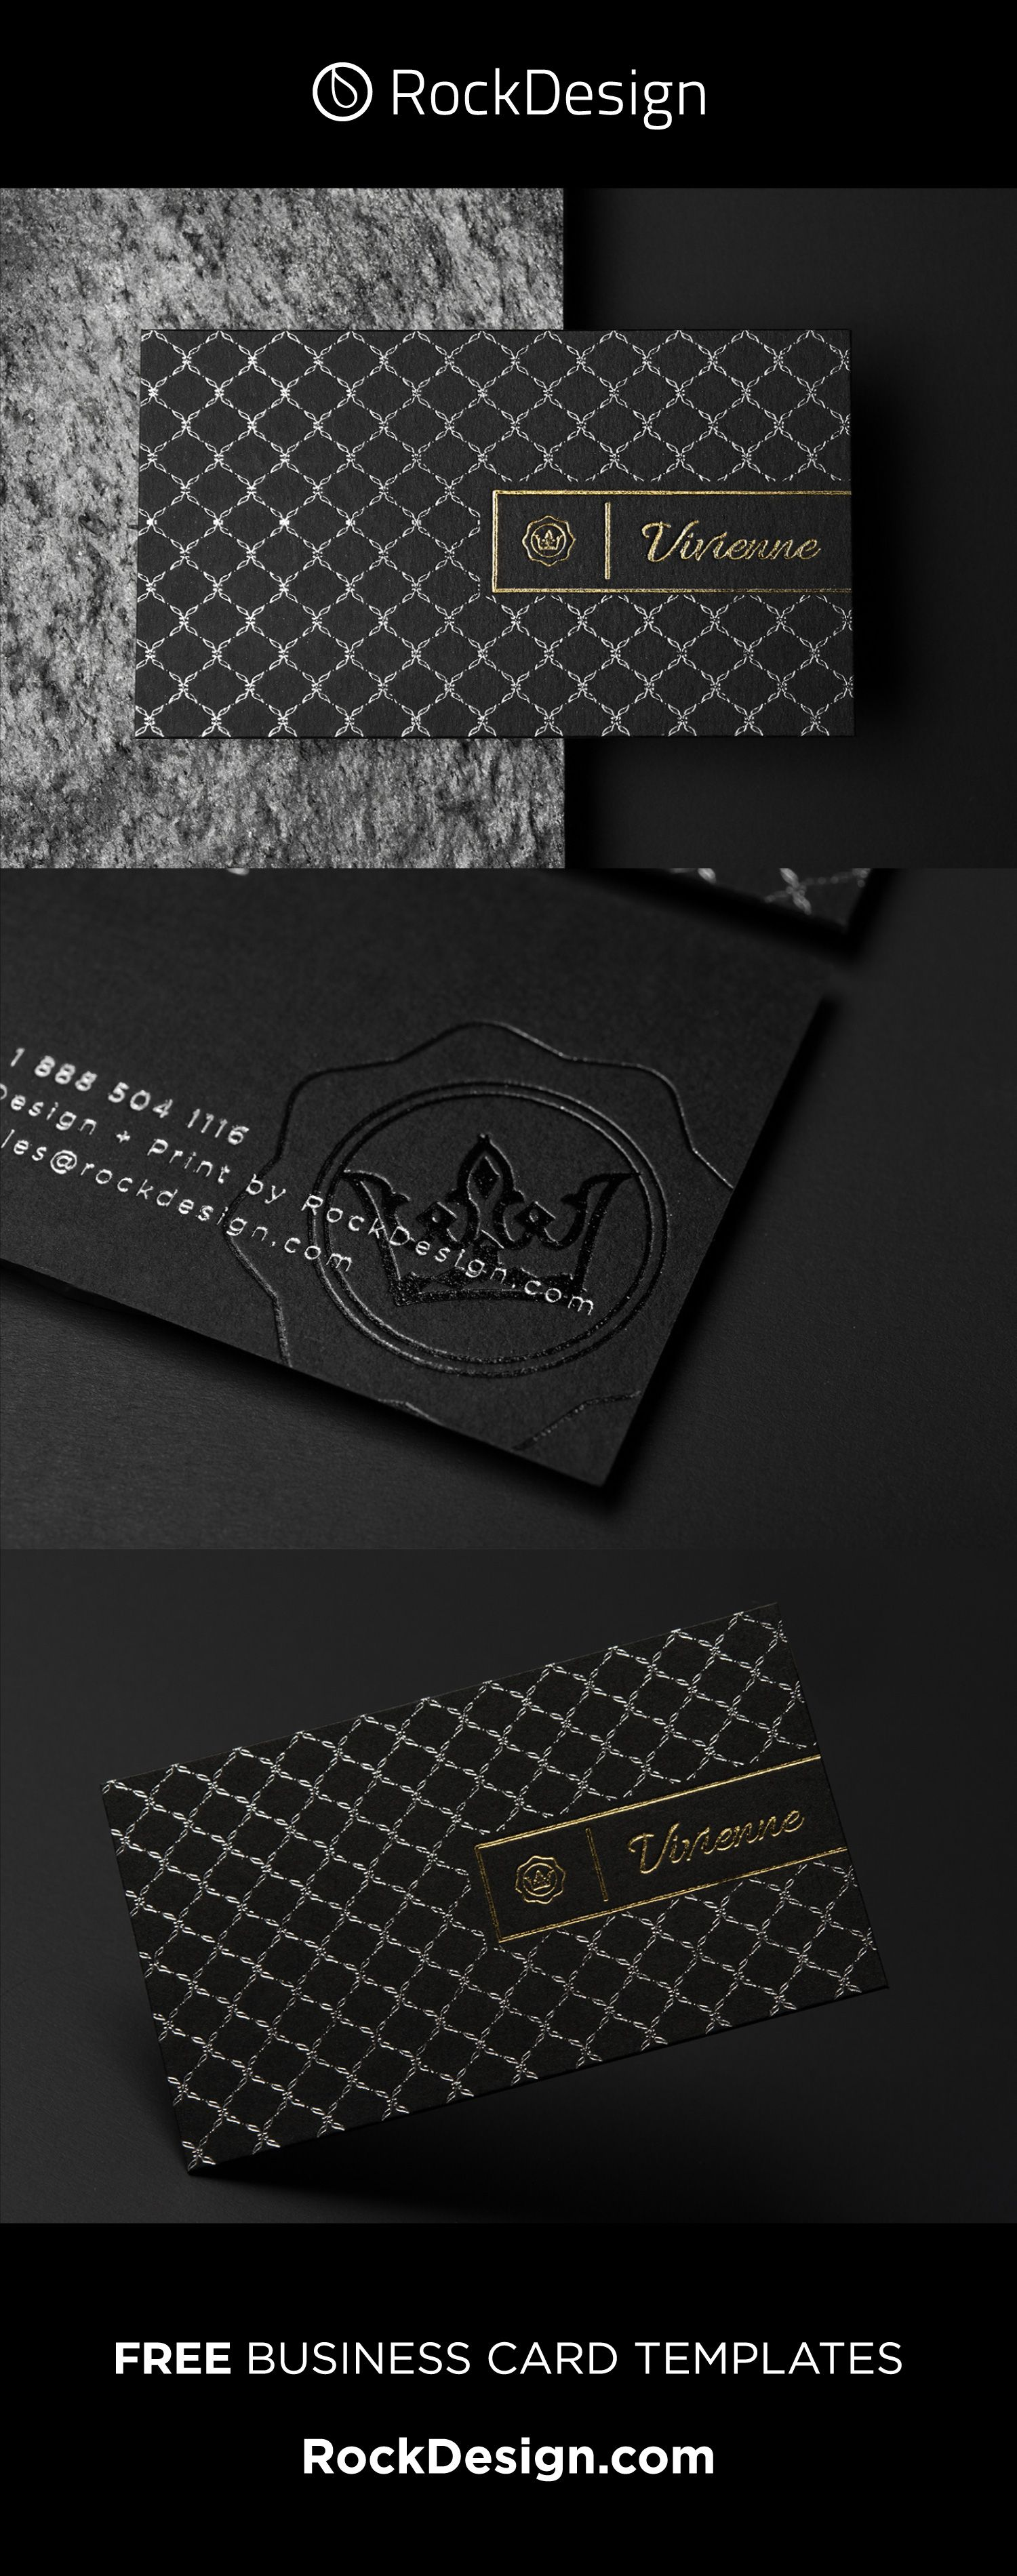 Luxury Pattern Real Estate Template Black Duplex Business Card Vivienne Elegant Business Cards Design Elegant Business Cards Classic Business Card